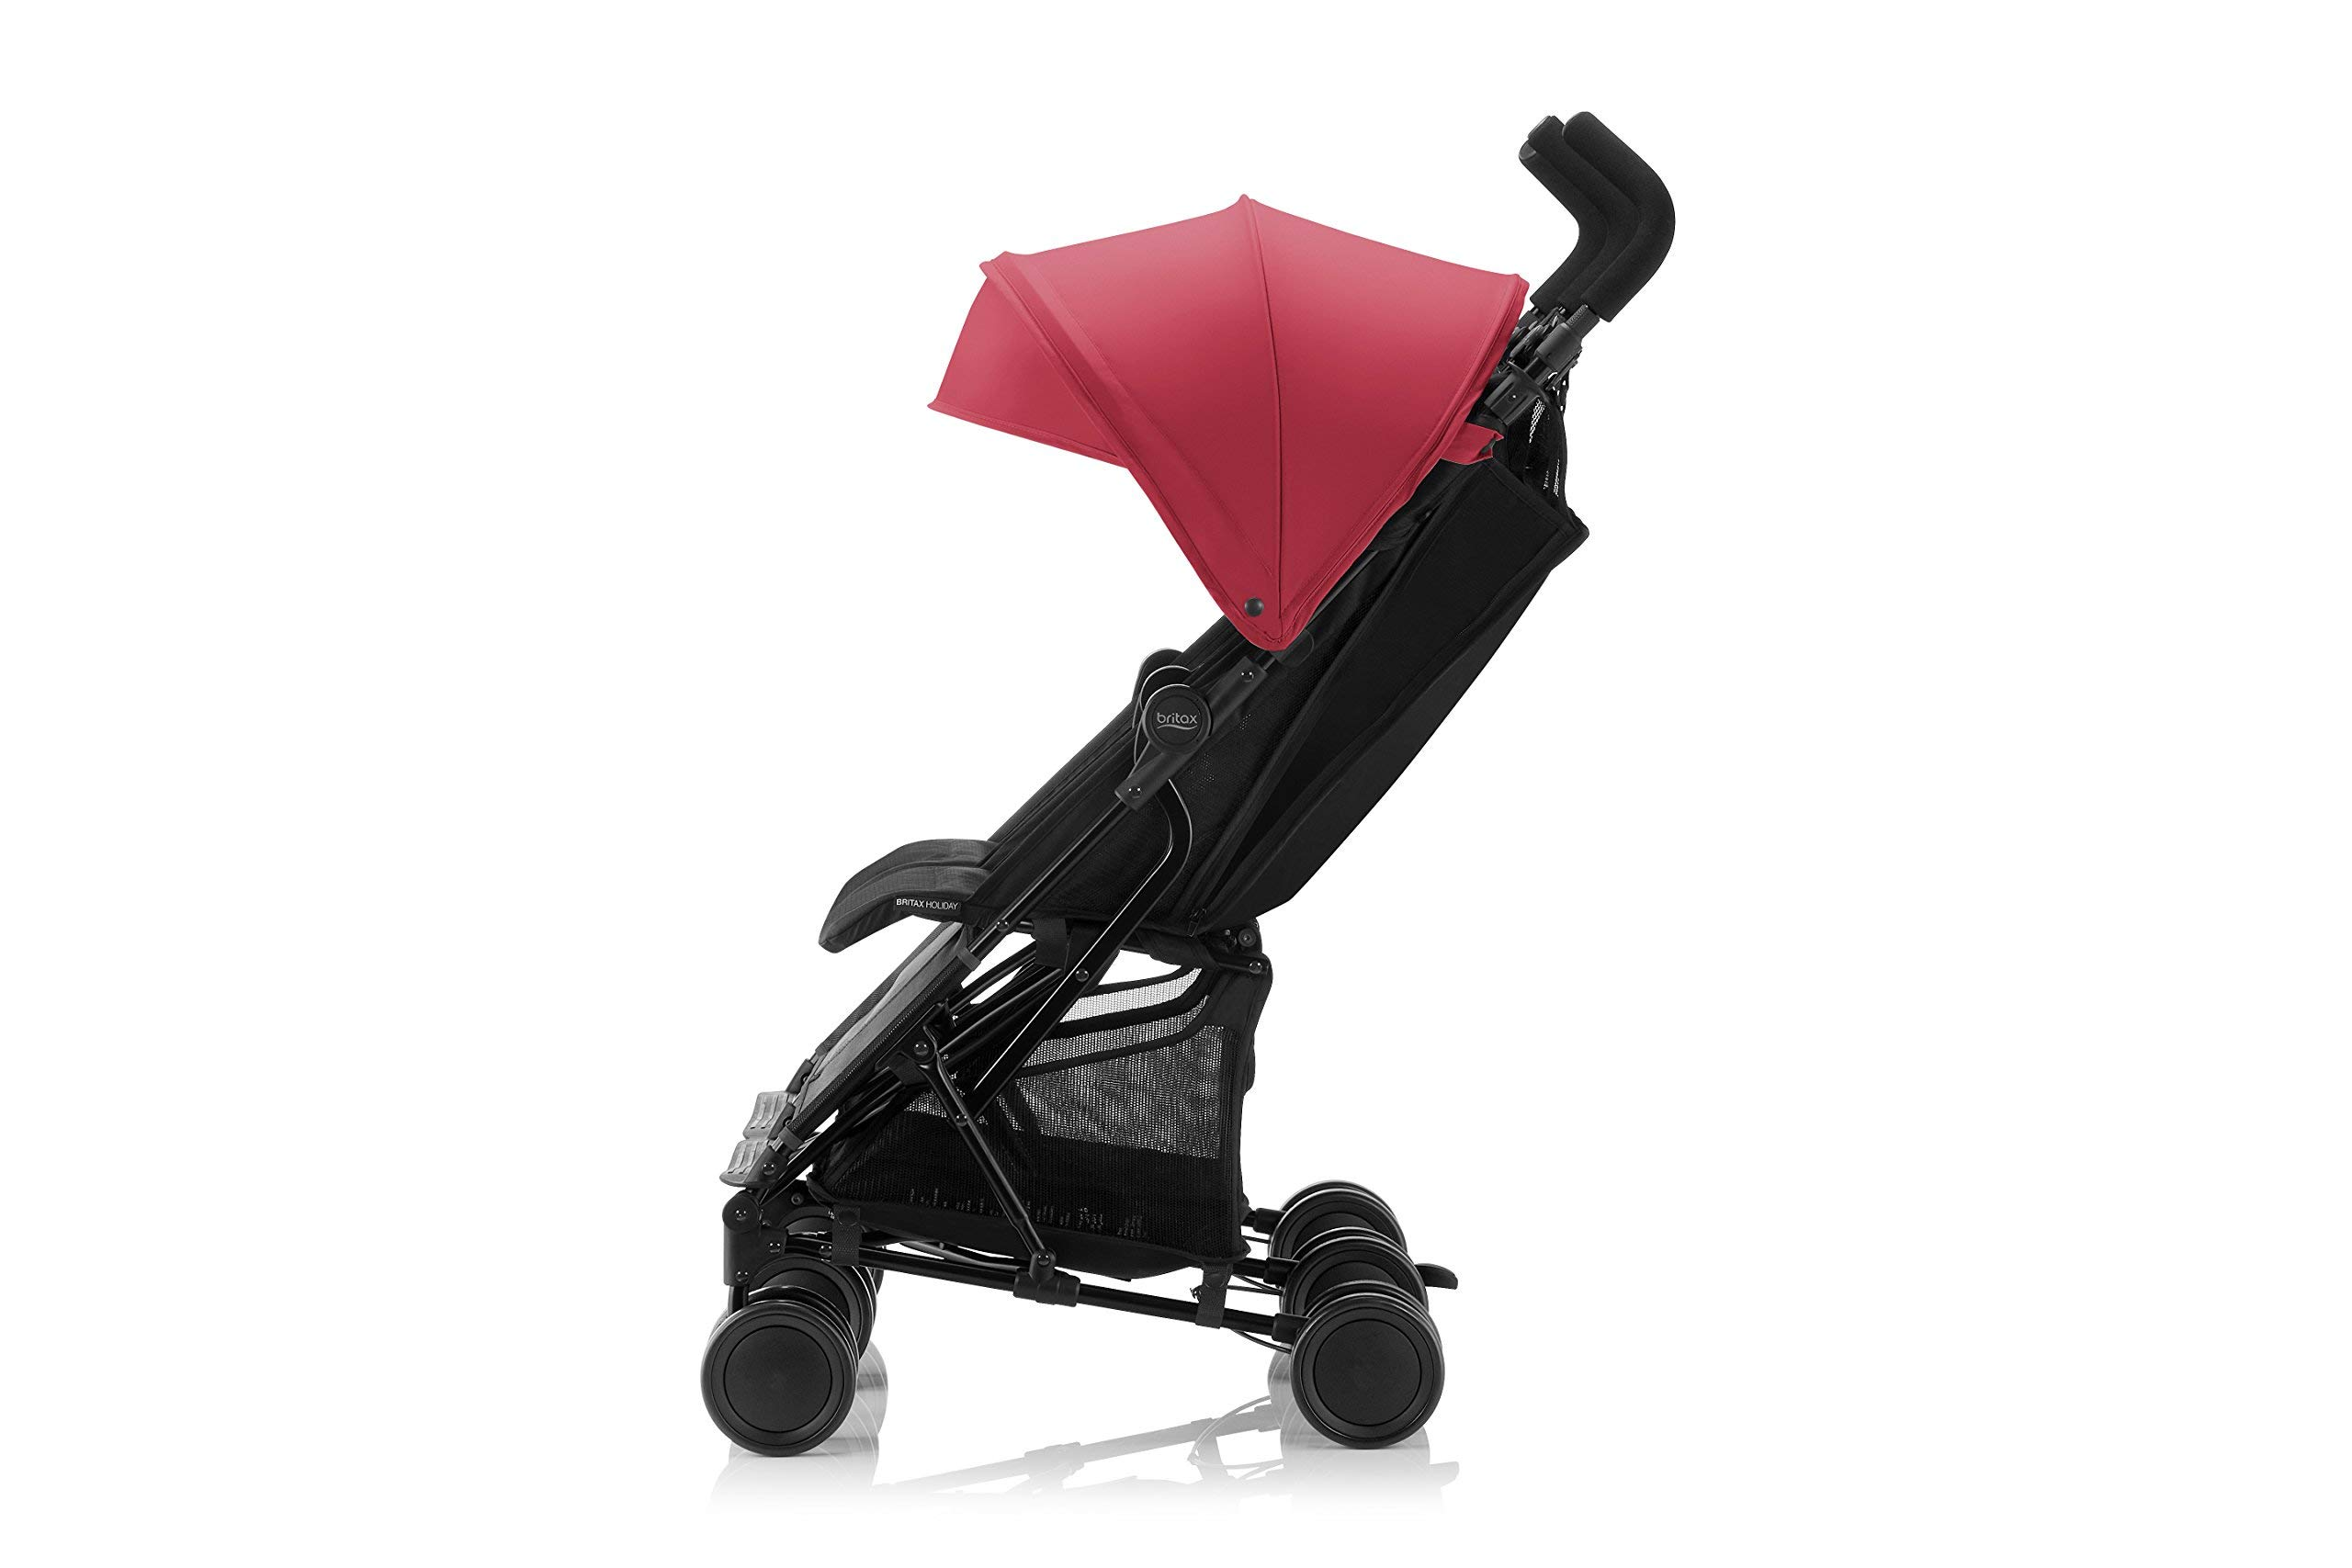 Britax Römer HOLIDAY DOUBLE Pushchair (6 months - 15 kg|3 years ) - Red/Blue  Reclining backrest - you can make your child's journey even more convenient with the reclining backrest. the backrest can be reclined independently which gives you the flexibility to provide a relaxing sleeping position for each child individually. Seat unit with mesh panels - to keep your child comfortable on hot days, the seat unit has mesh panels on the sides and top of the seat unit for better air circulation. Large hood with sun visor - when taking a nice relaxing stroll in the sun, the large hoods with sun visor are independently adjustable and provide protective shade to your little passenger. 8